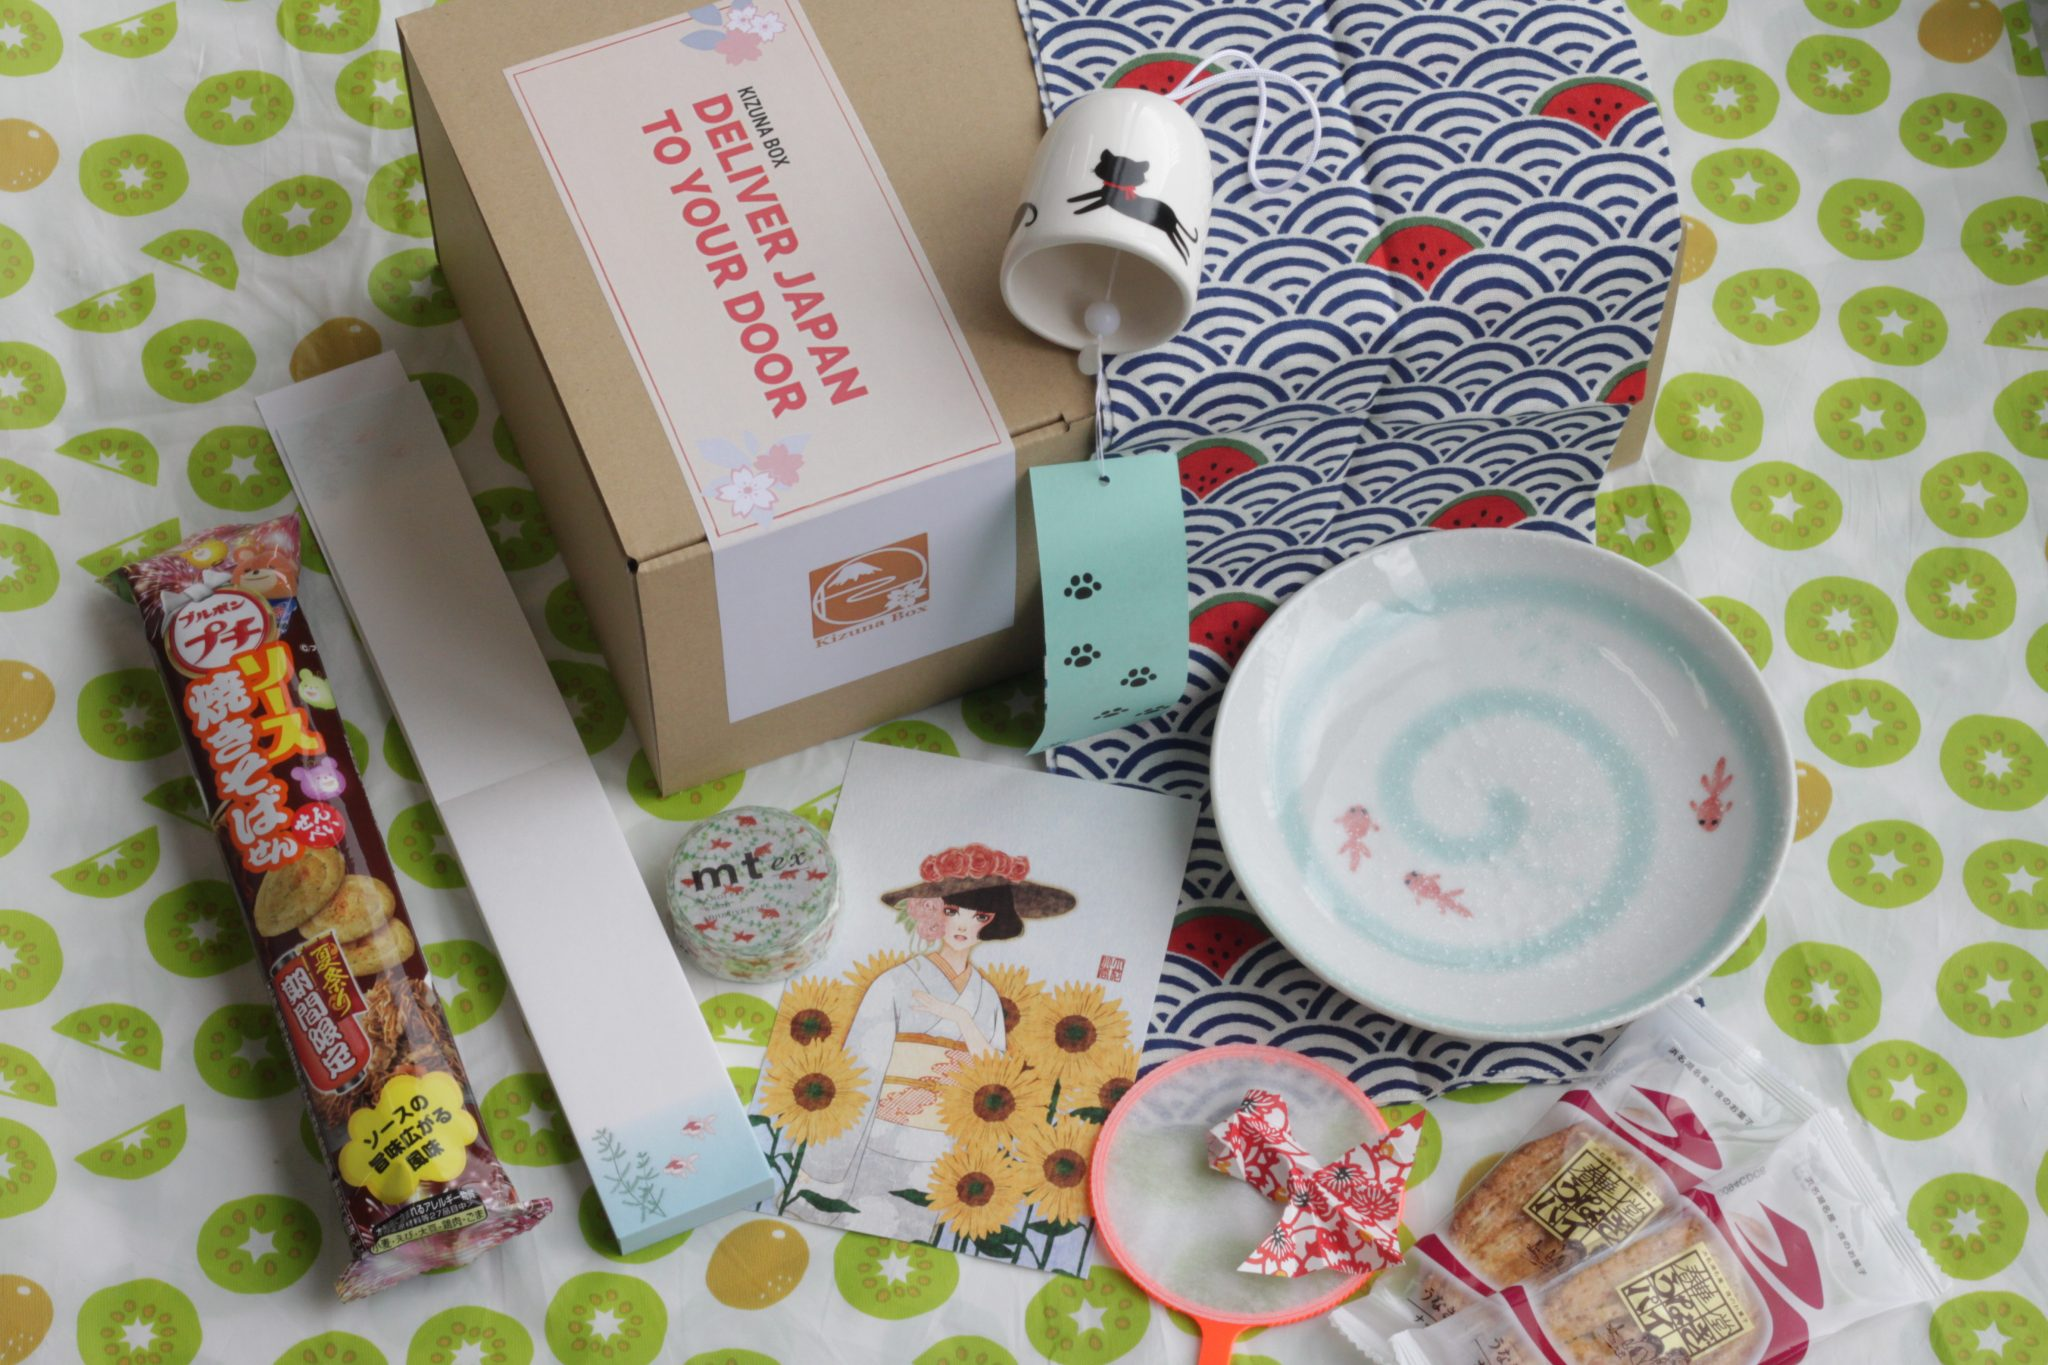 August_Lifestyle Box_with the box